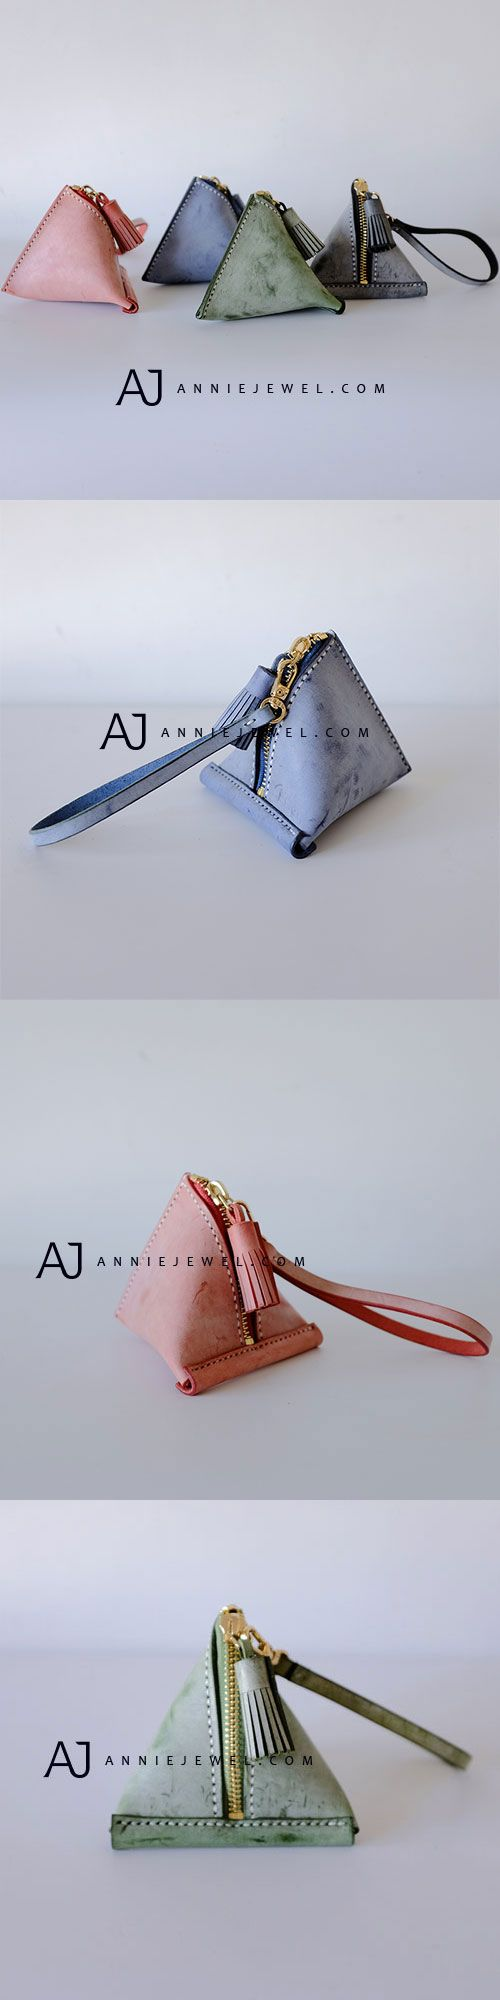 CUTE! HANDMADE LEATHER COIN WALLET VINTAGE KEY WALLET CLUTCH PURSE WALLET BAG FOR GIRLS WOMEN